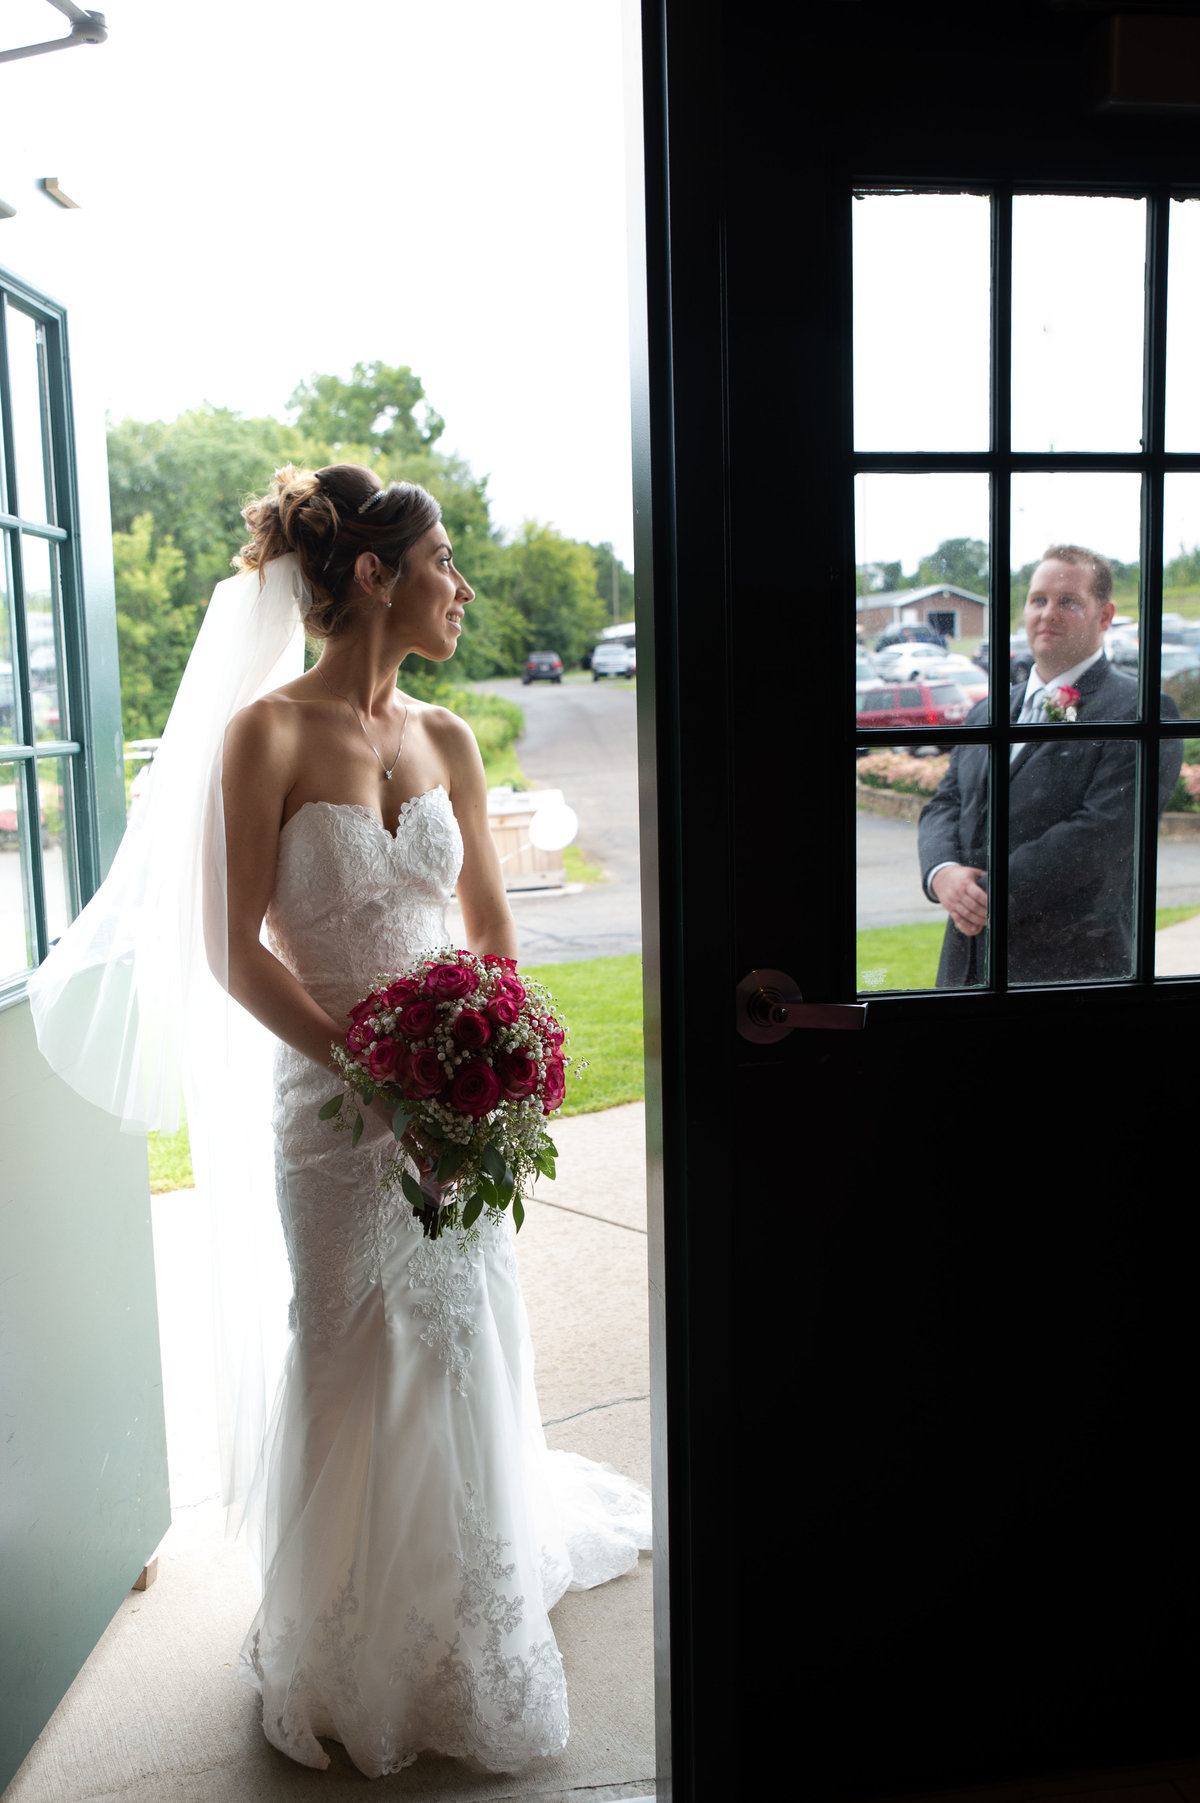 couple exchange look in doorway frame